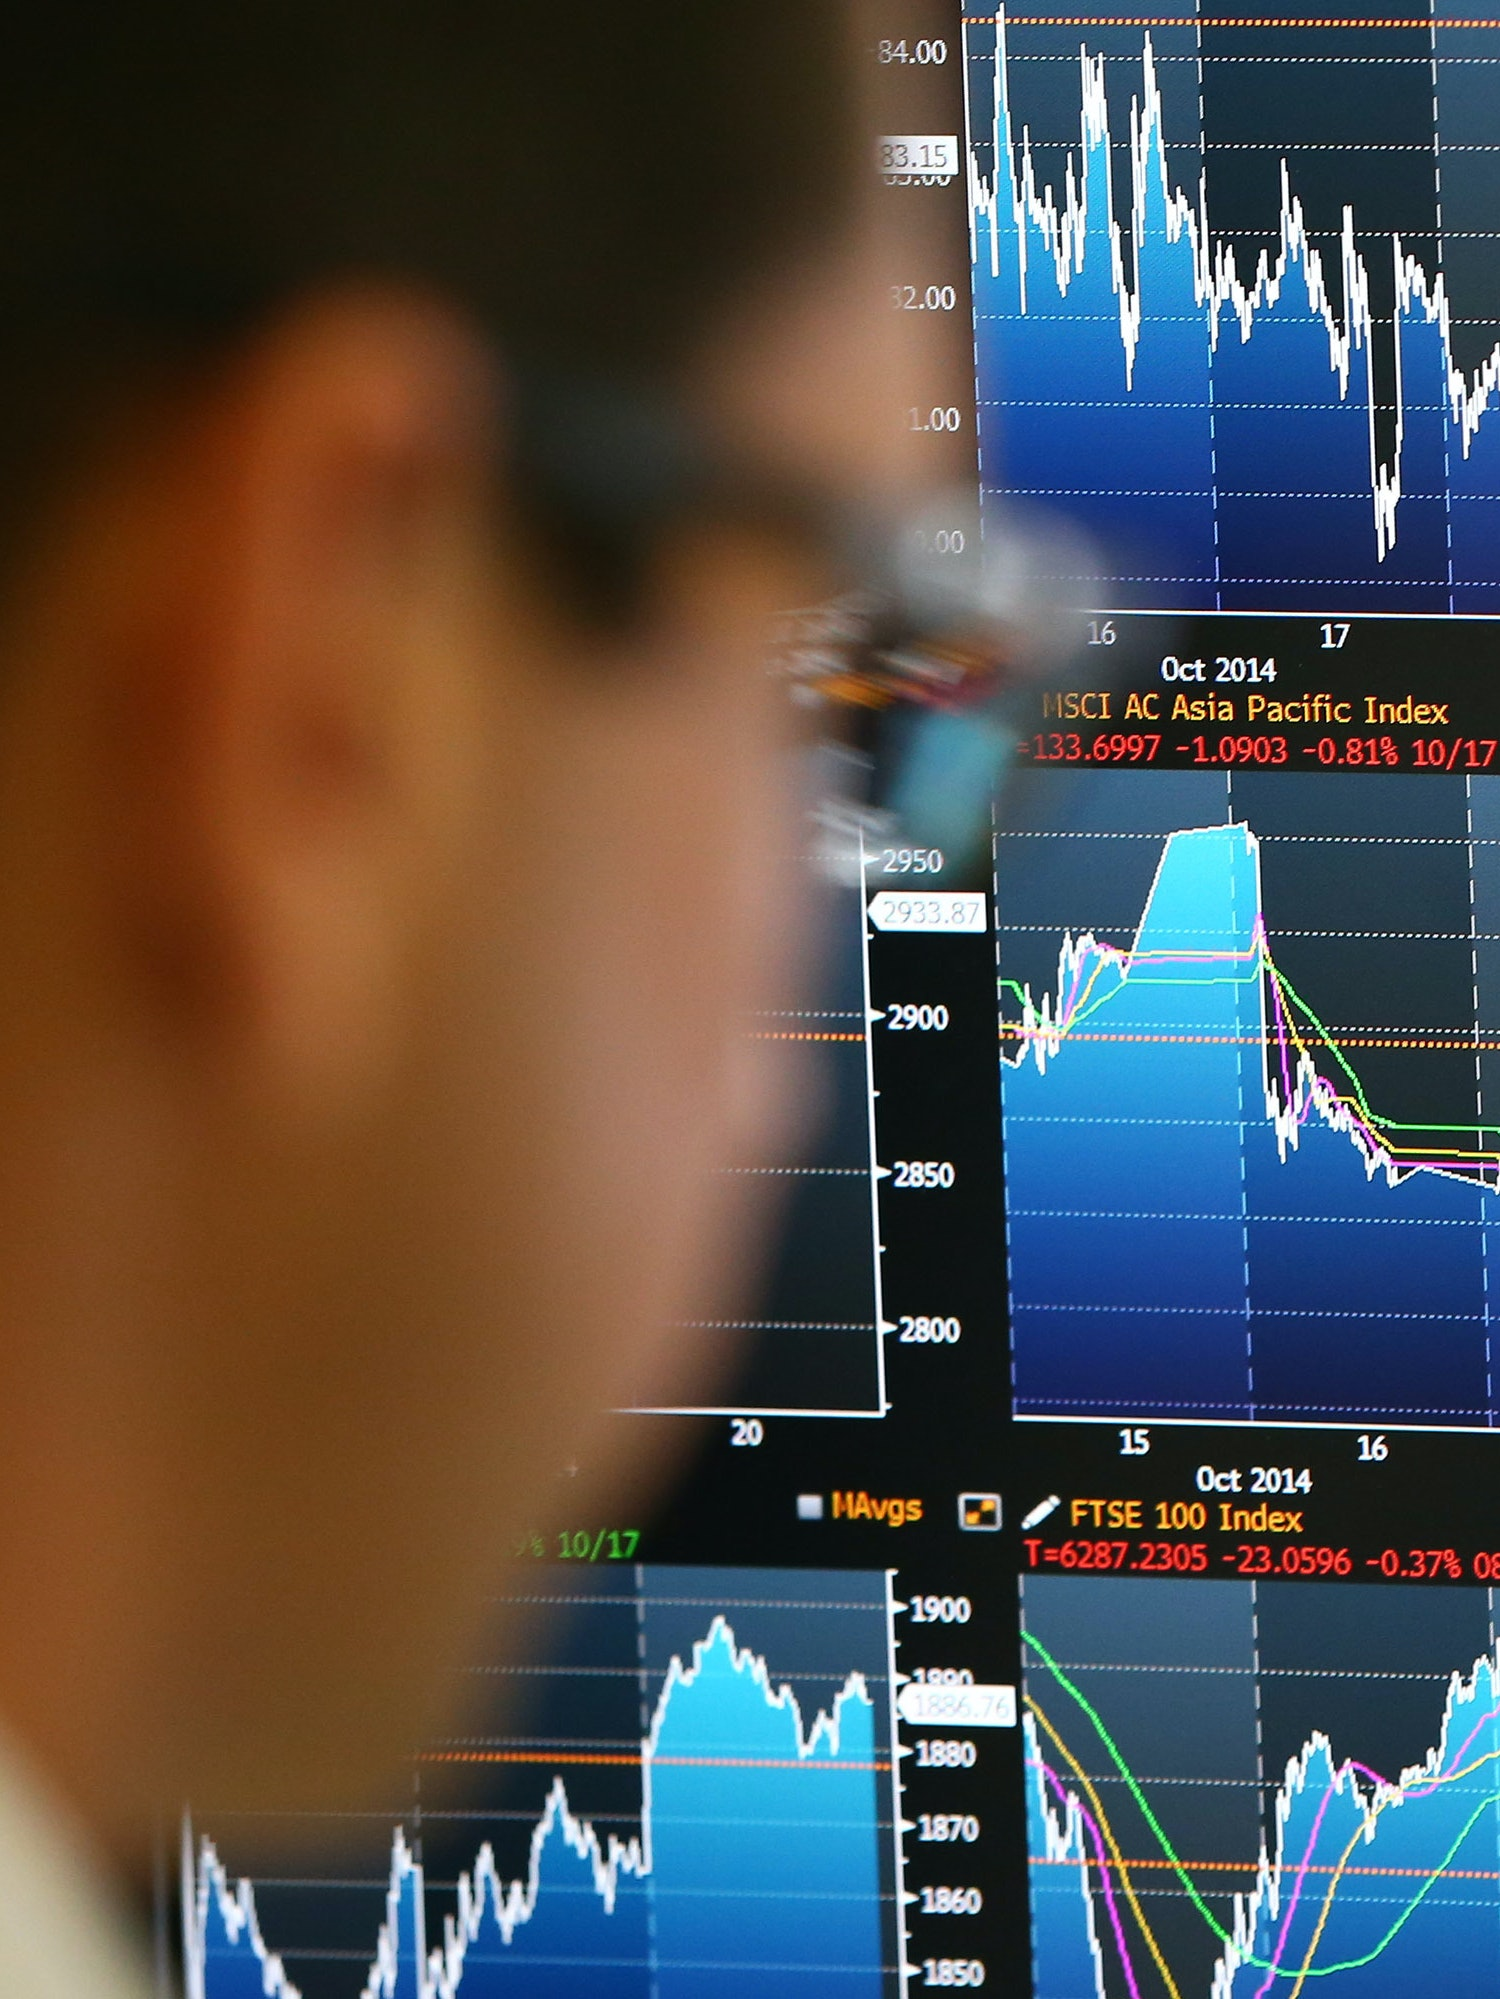 LONDON, ENGLAND - OCTOBER 20:  An employee views trading screens at the offices of Panmure Gordon and Co on October 20, 2014 in London, England. Markets stabilised over the weekend following global turbulence amid fears over the Ebola virus and global economic concerns.  (Photo by Carl Court/Getty Images)